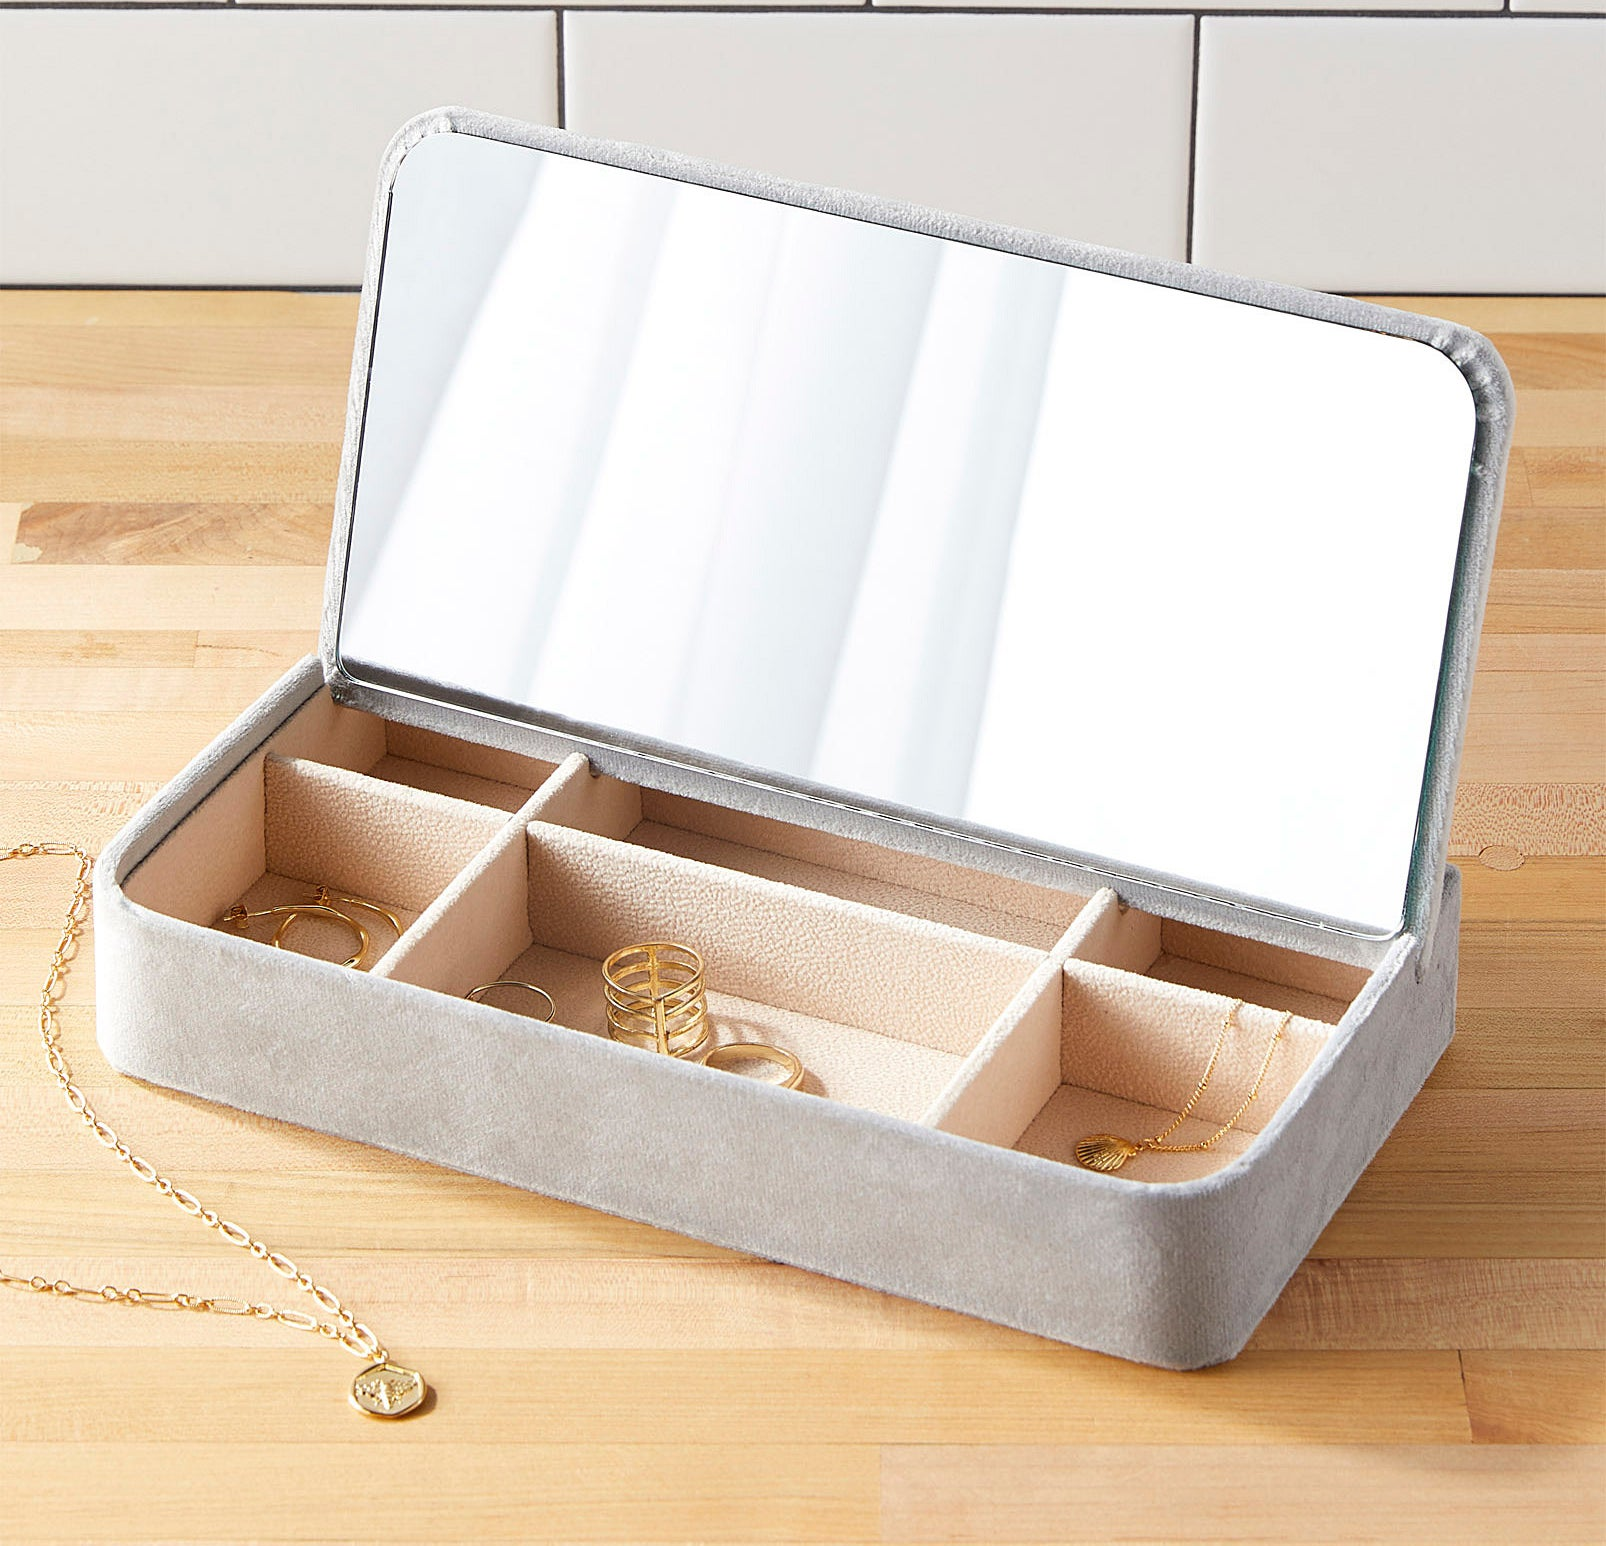 A velvet-covered jewelry box with a mirror and six little compartments filled with rings, earrings, and necklaces.